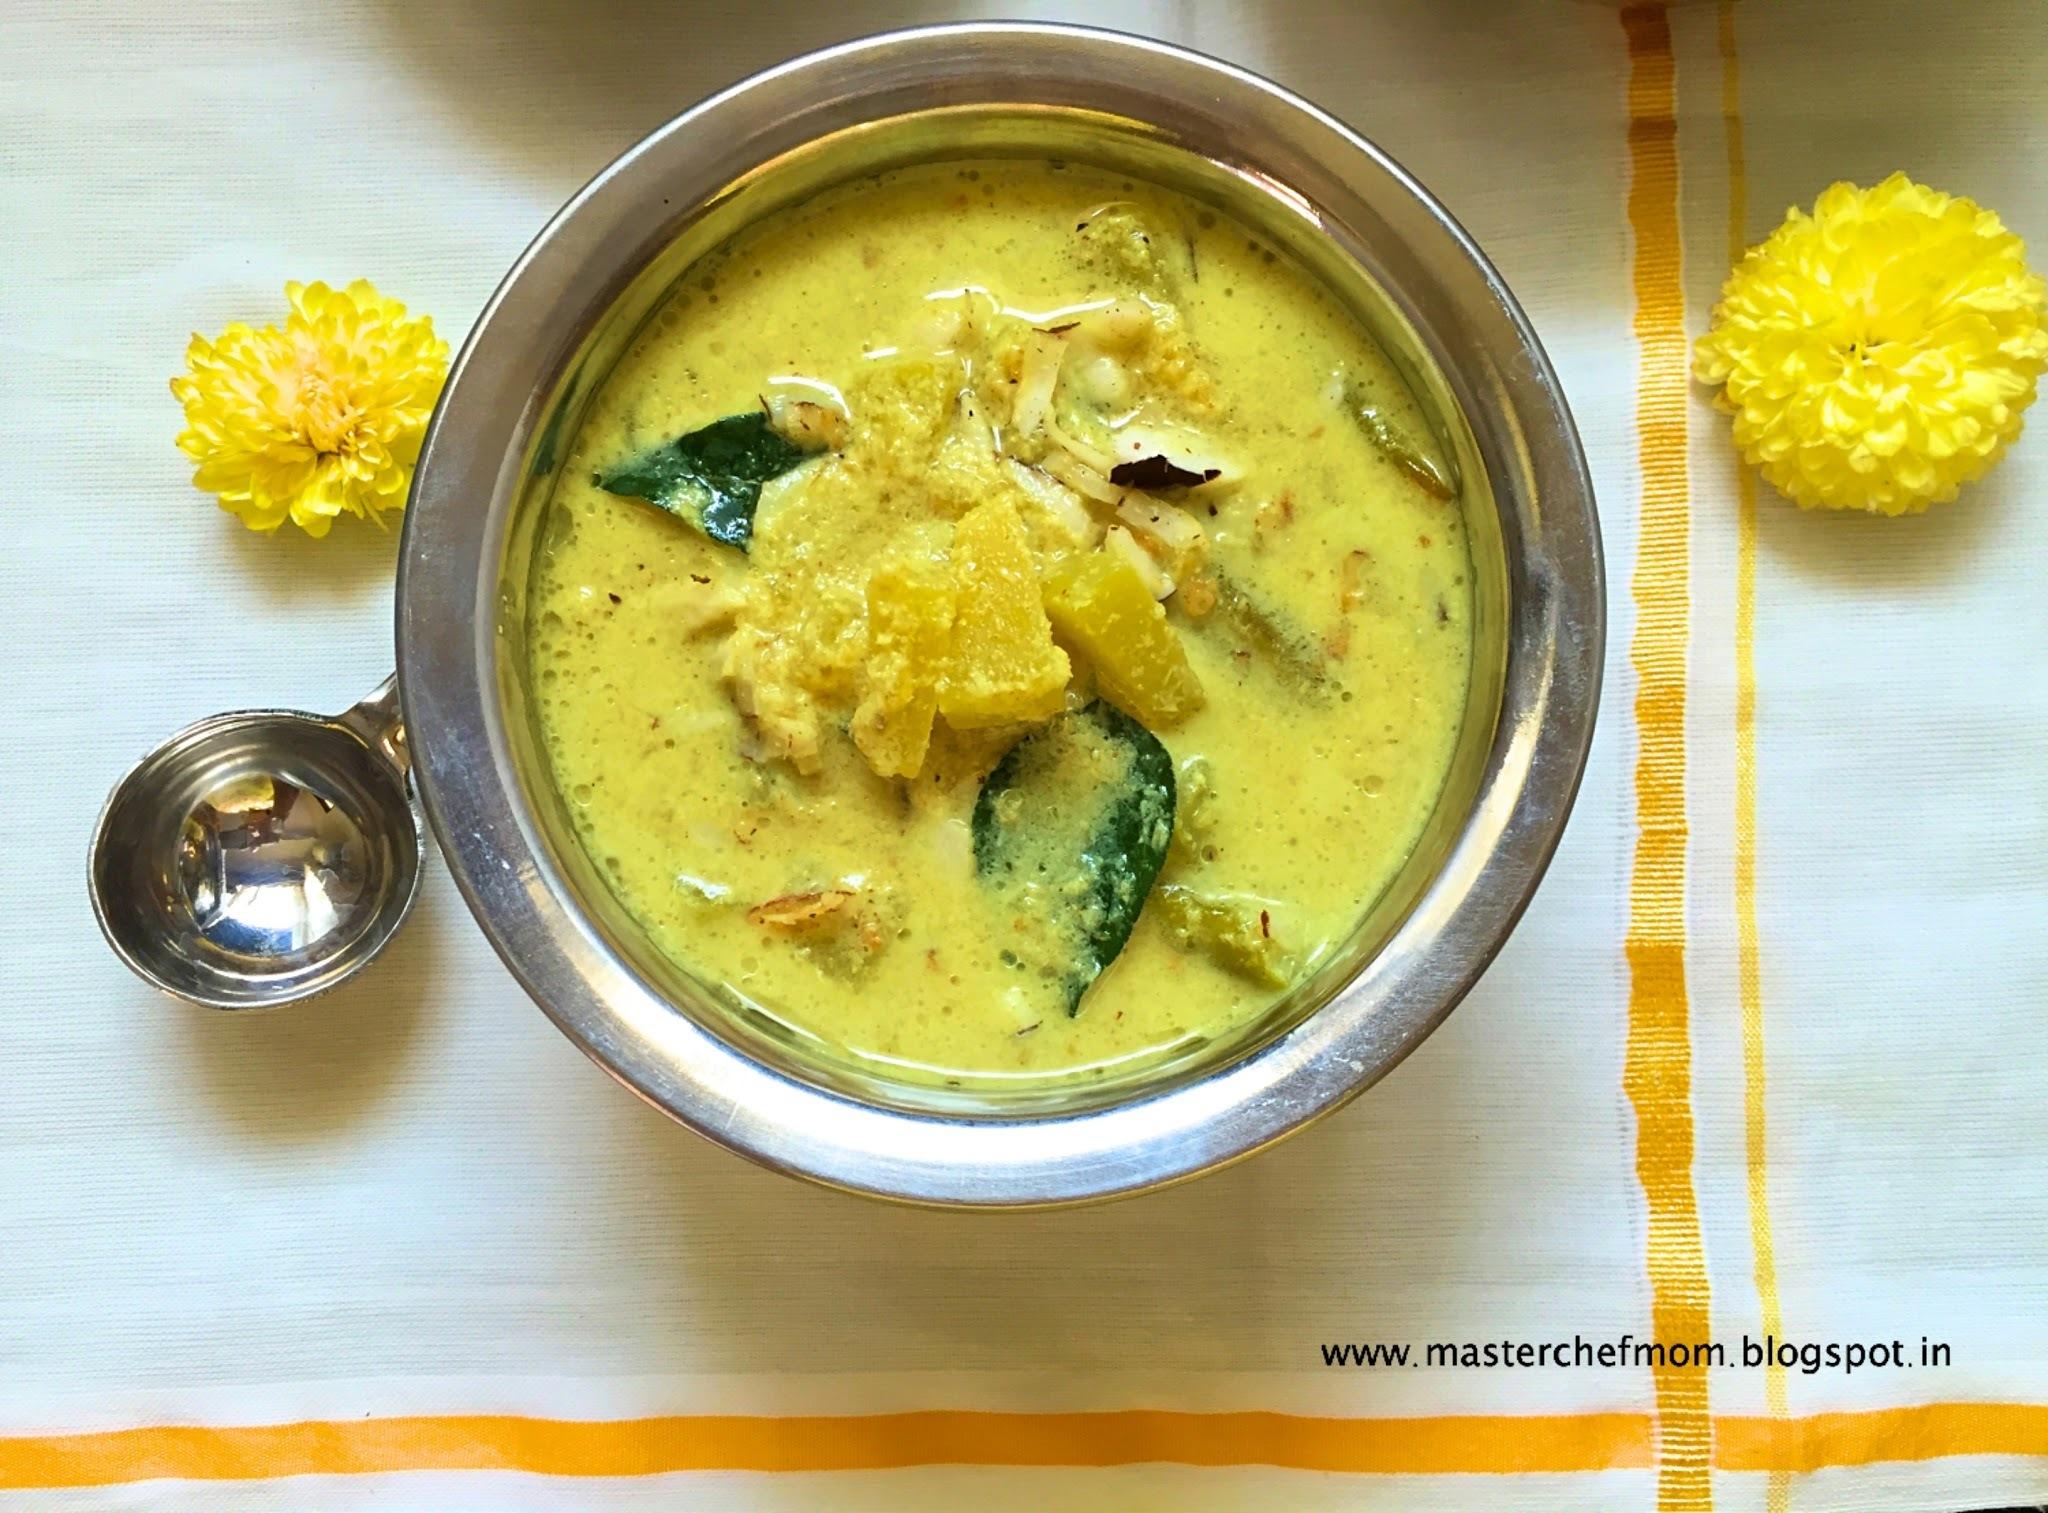 Mathanga Erissery | Kerala Style Yellow Pumpkin Coconut Curry | How to make Mathanga Erissery | Vegan and Gluten Free Recipe | Festival Recipes by Masterchefmom